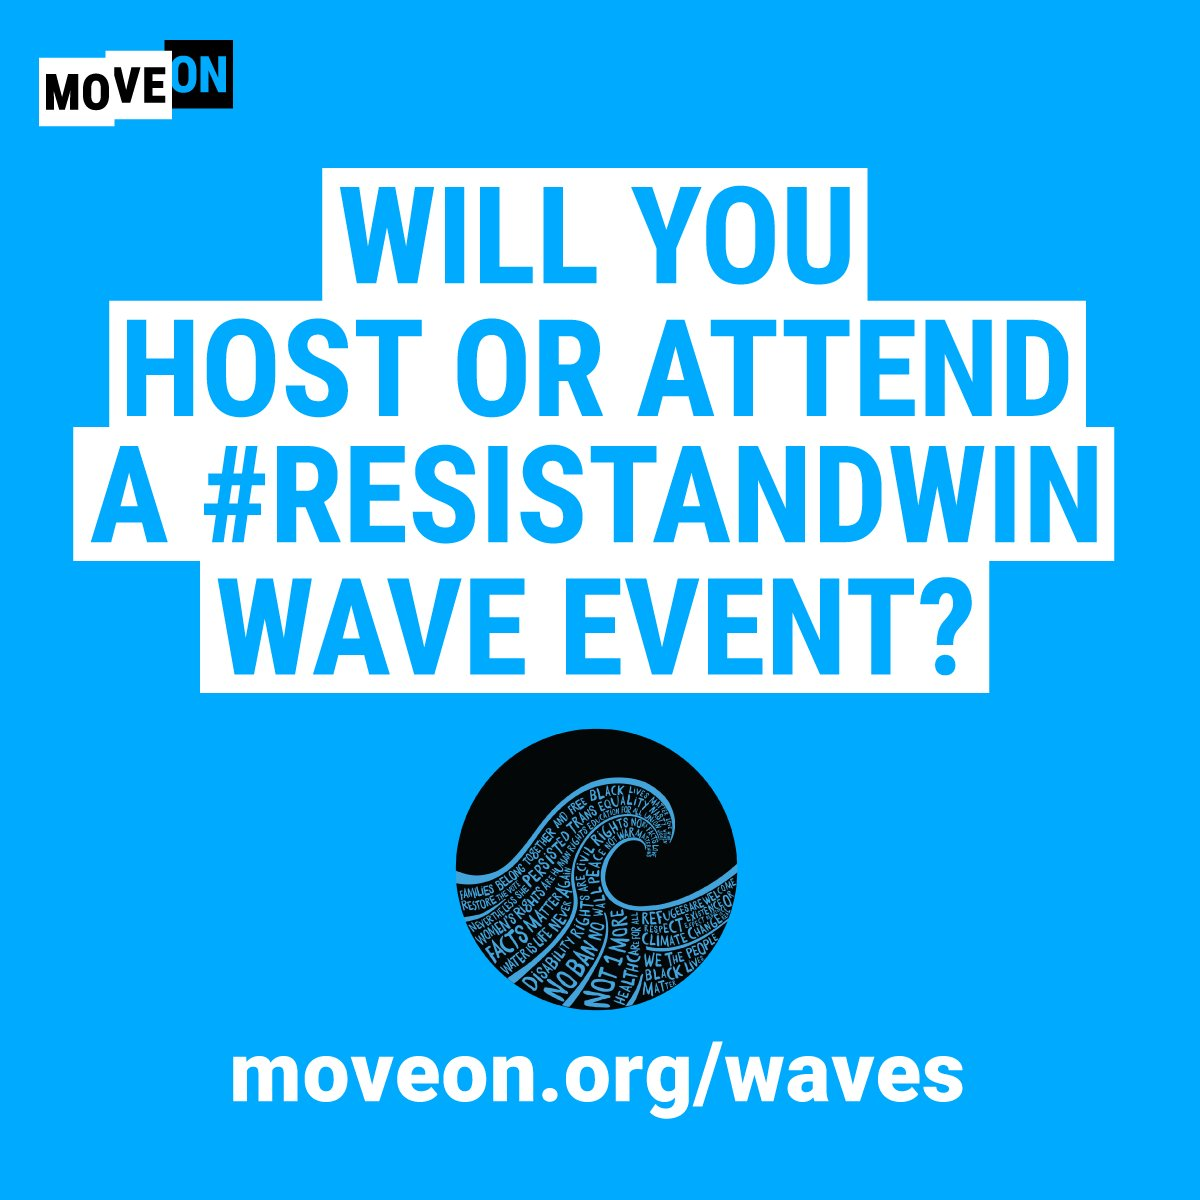 There are first-time #ResistAndWin Leaders taking action across the country to end @GOP control of the House in November. Join us & be part of something incredible: https://t.co/Pd01tn2xny